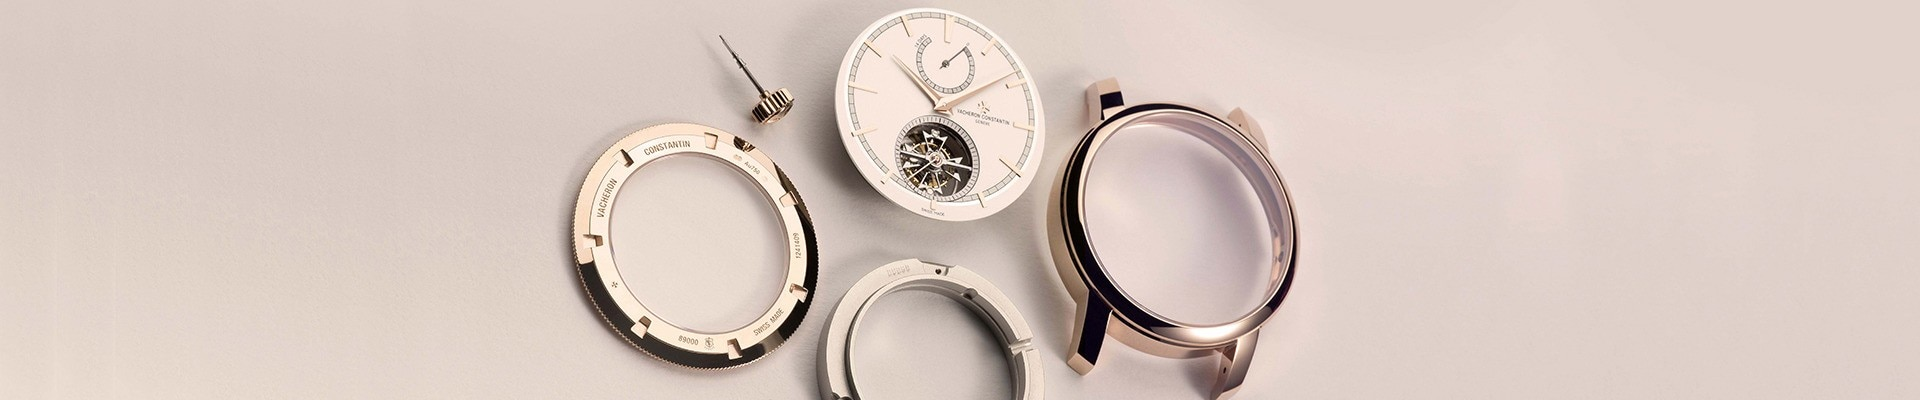 Vacheron Constantin - Centre de services - Header